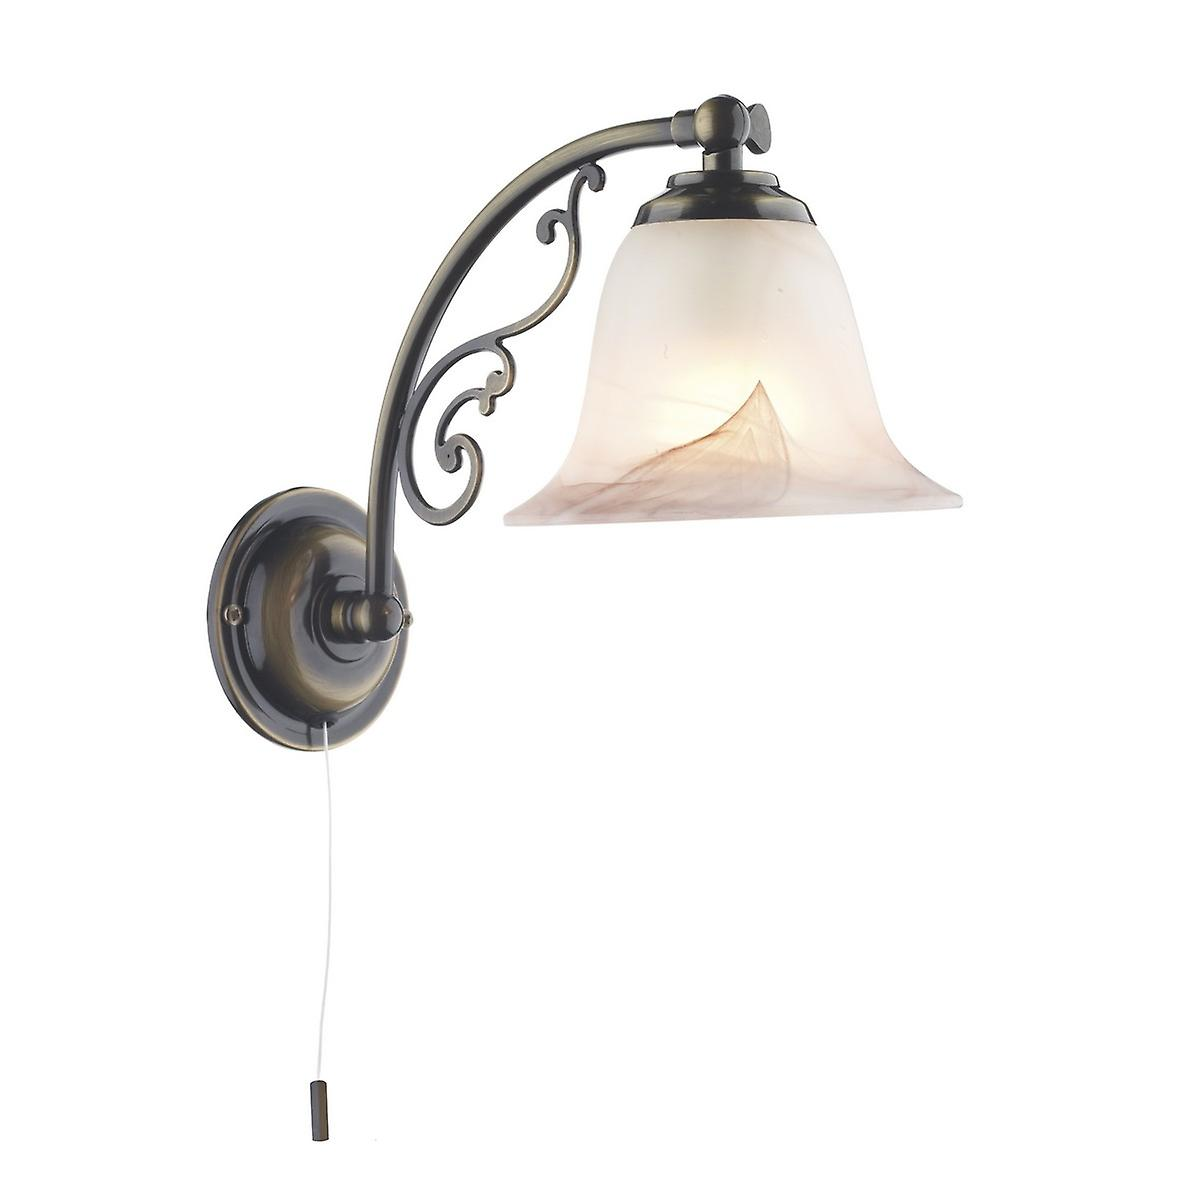 David Hunt CW10ABP Campden Single Wall Light In An Antique Brass Finish - Bracket Only